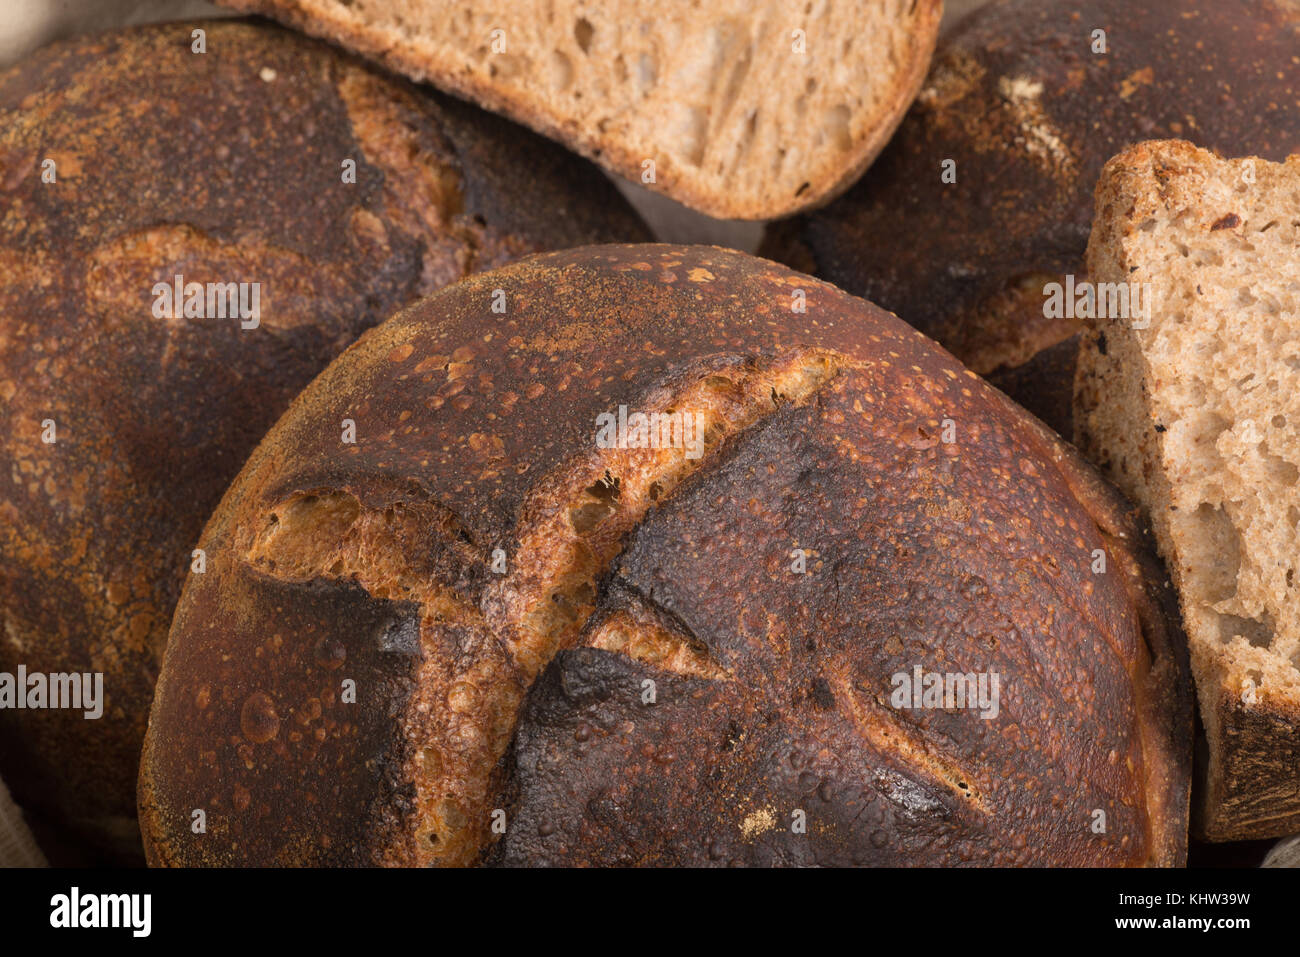 Fresh Baked Loafs Of Round Artisan Sour Dough Whole Wheat Bread In A Basket